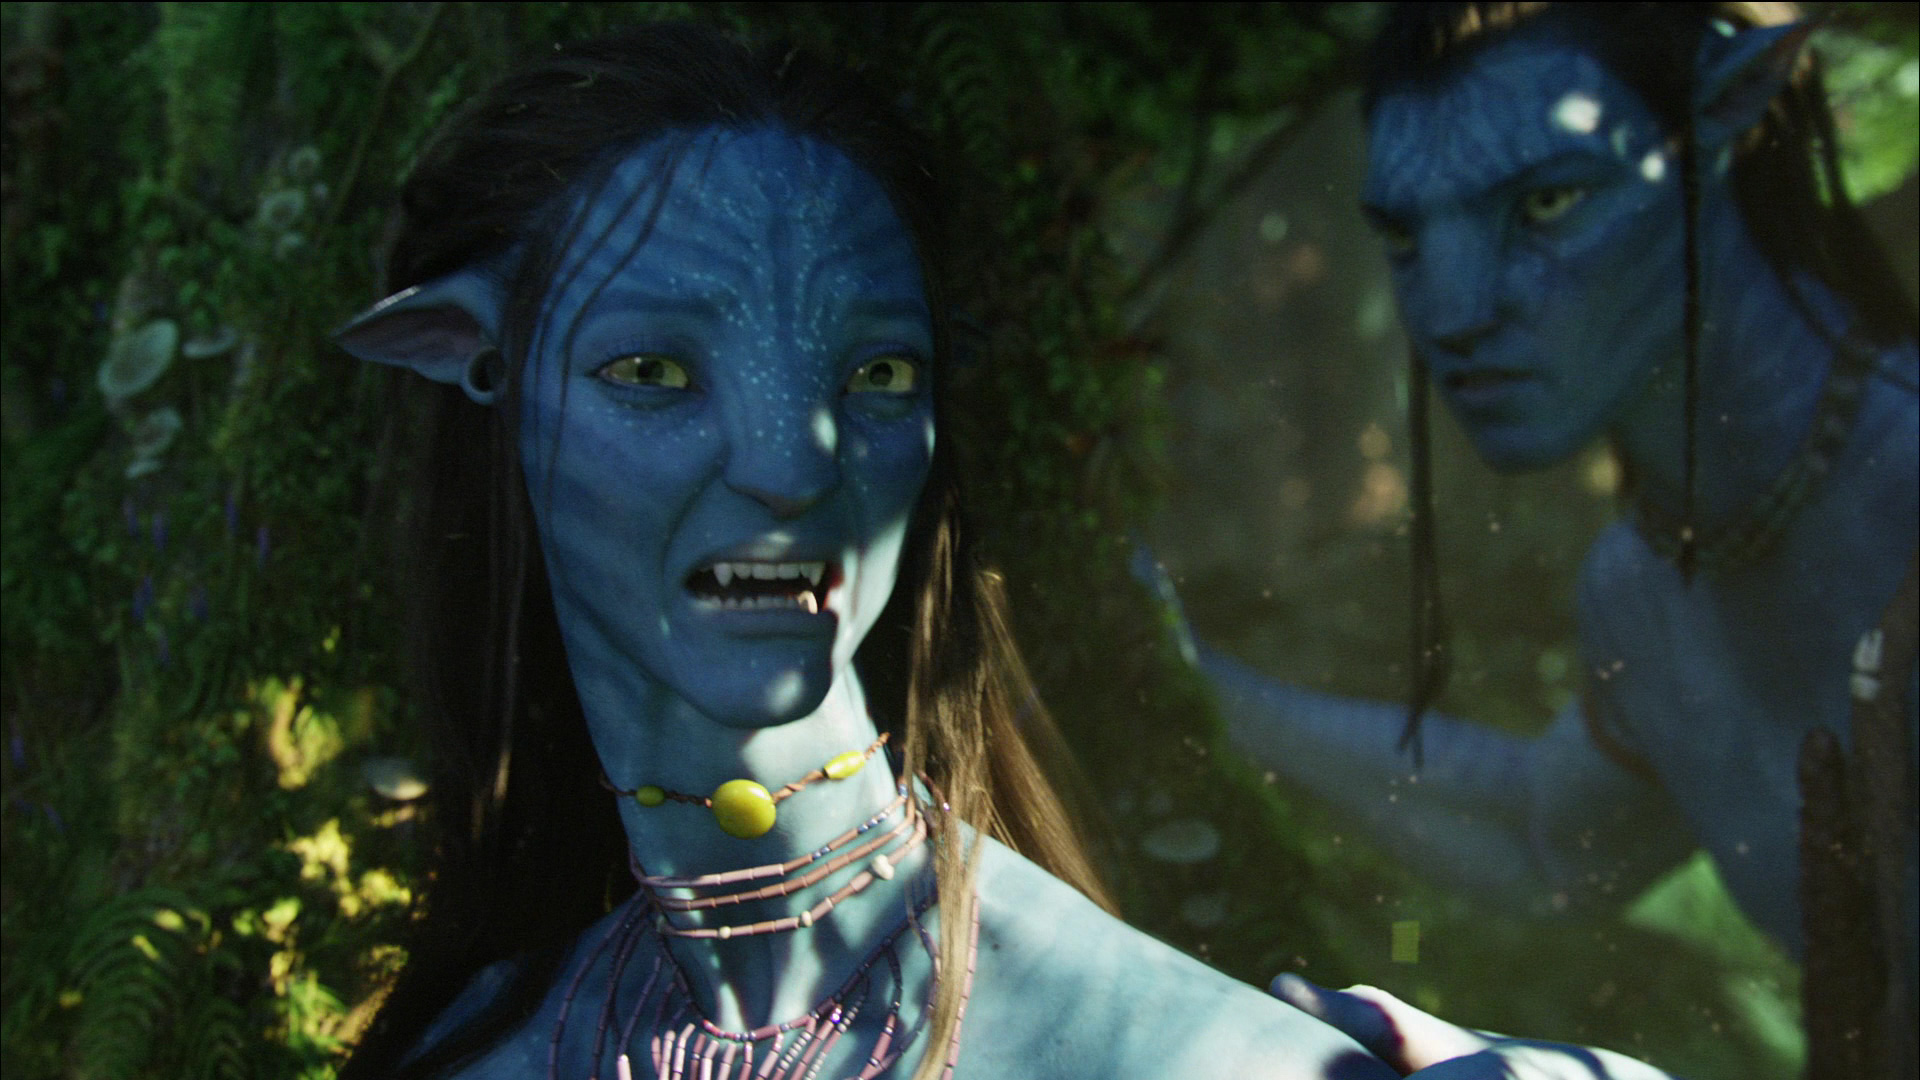 anthropological themes in avatar James cameron's avatar is an epic science fiction action drama movie this film, even though it is a fantasy, contains so many scenarios that.